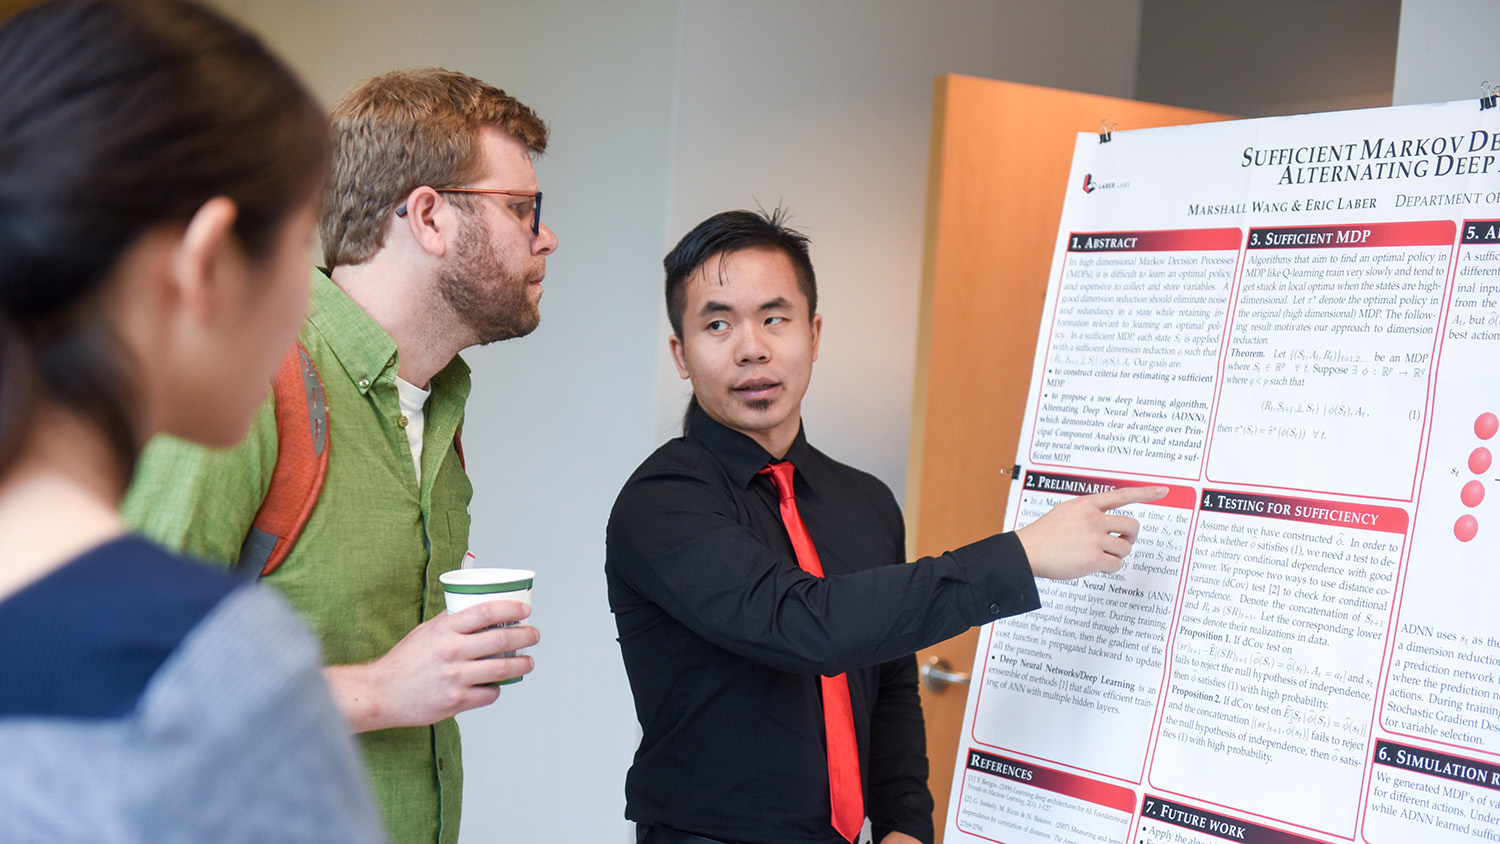 Two people look on as one student explains his research using a poster